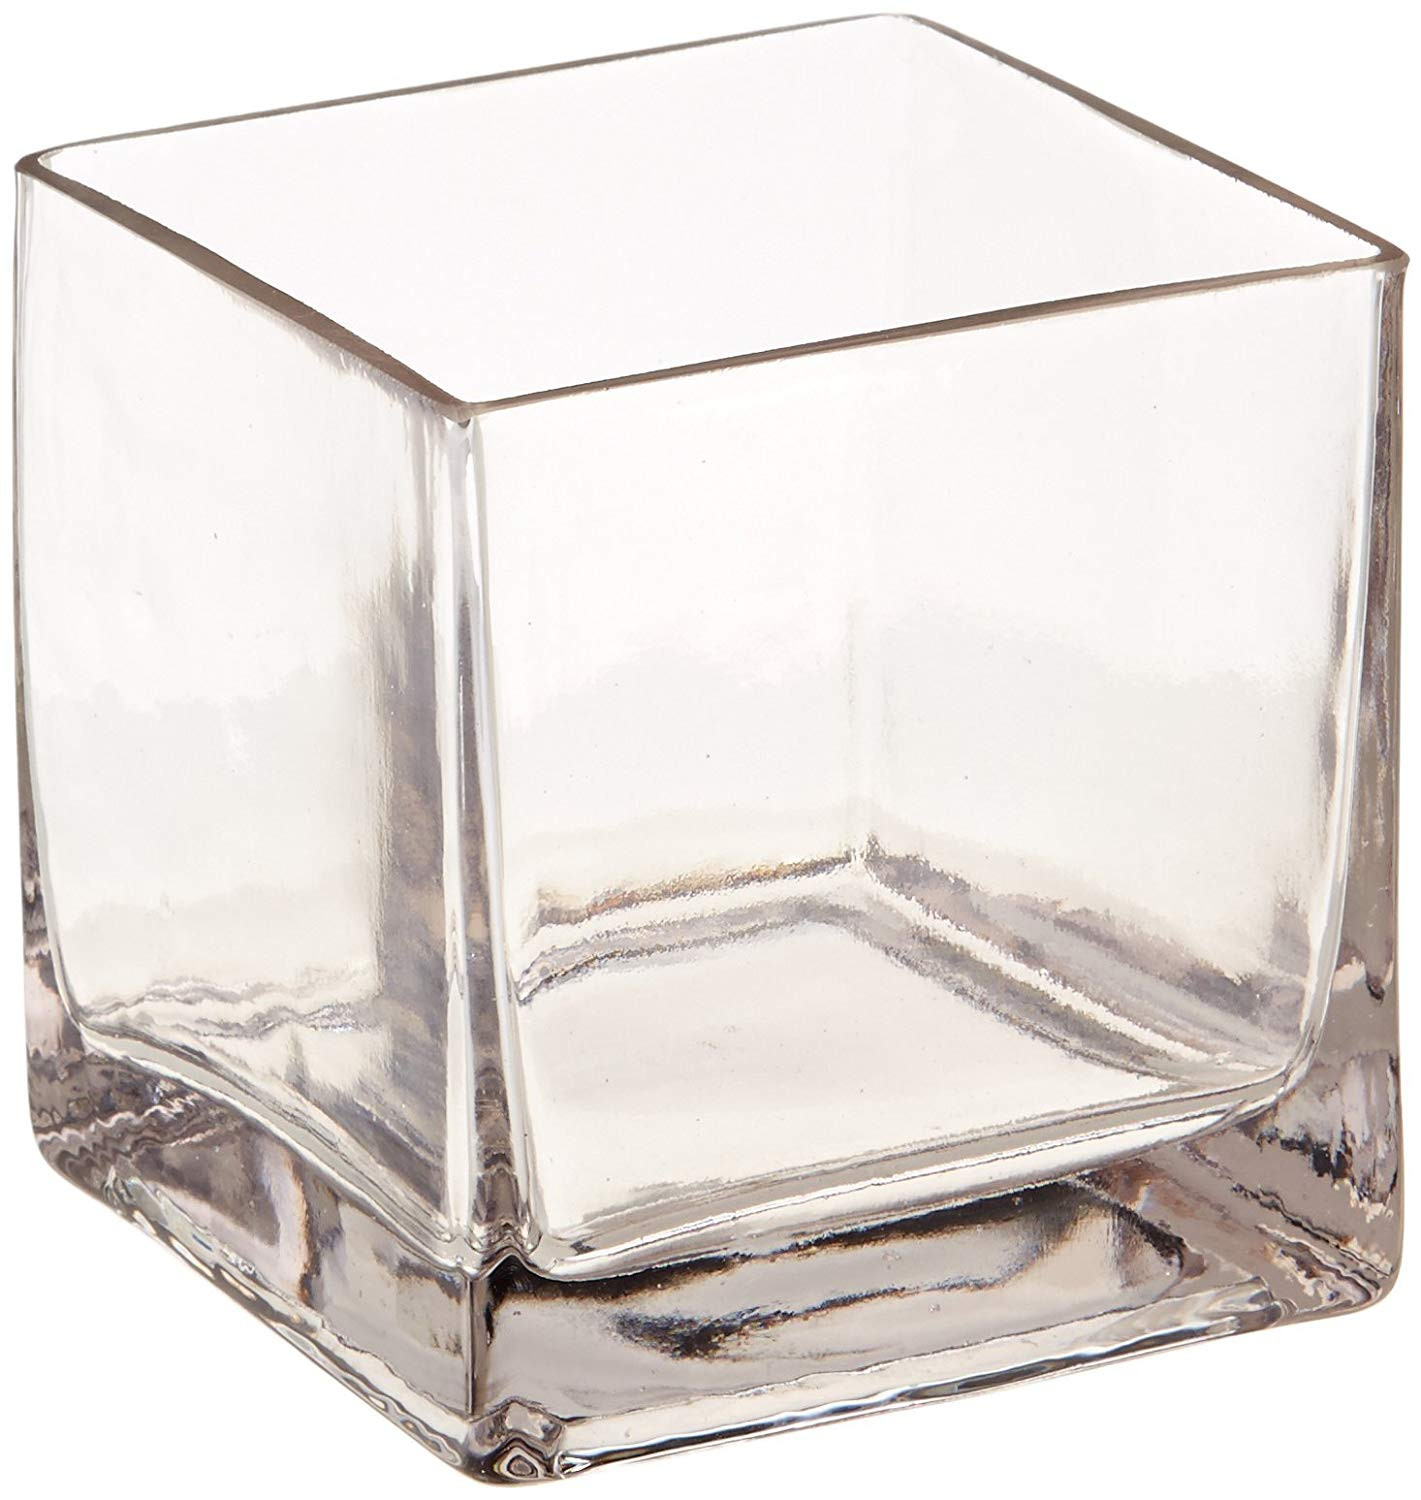 cheap glass cube vases of amazon com 12piece 4 square crystal clear glass vase home kitchen pertaining to 71 jezfmvnl sl1500